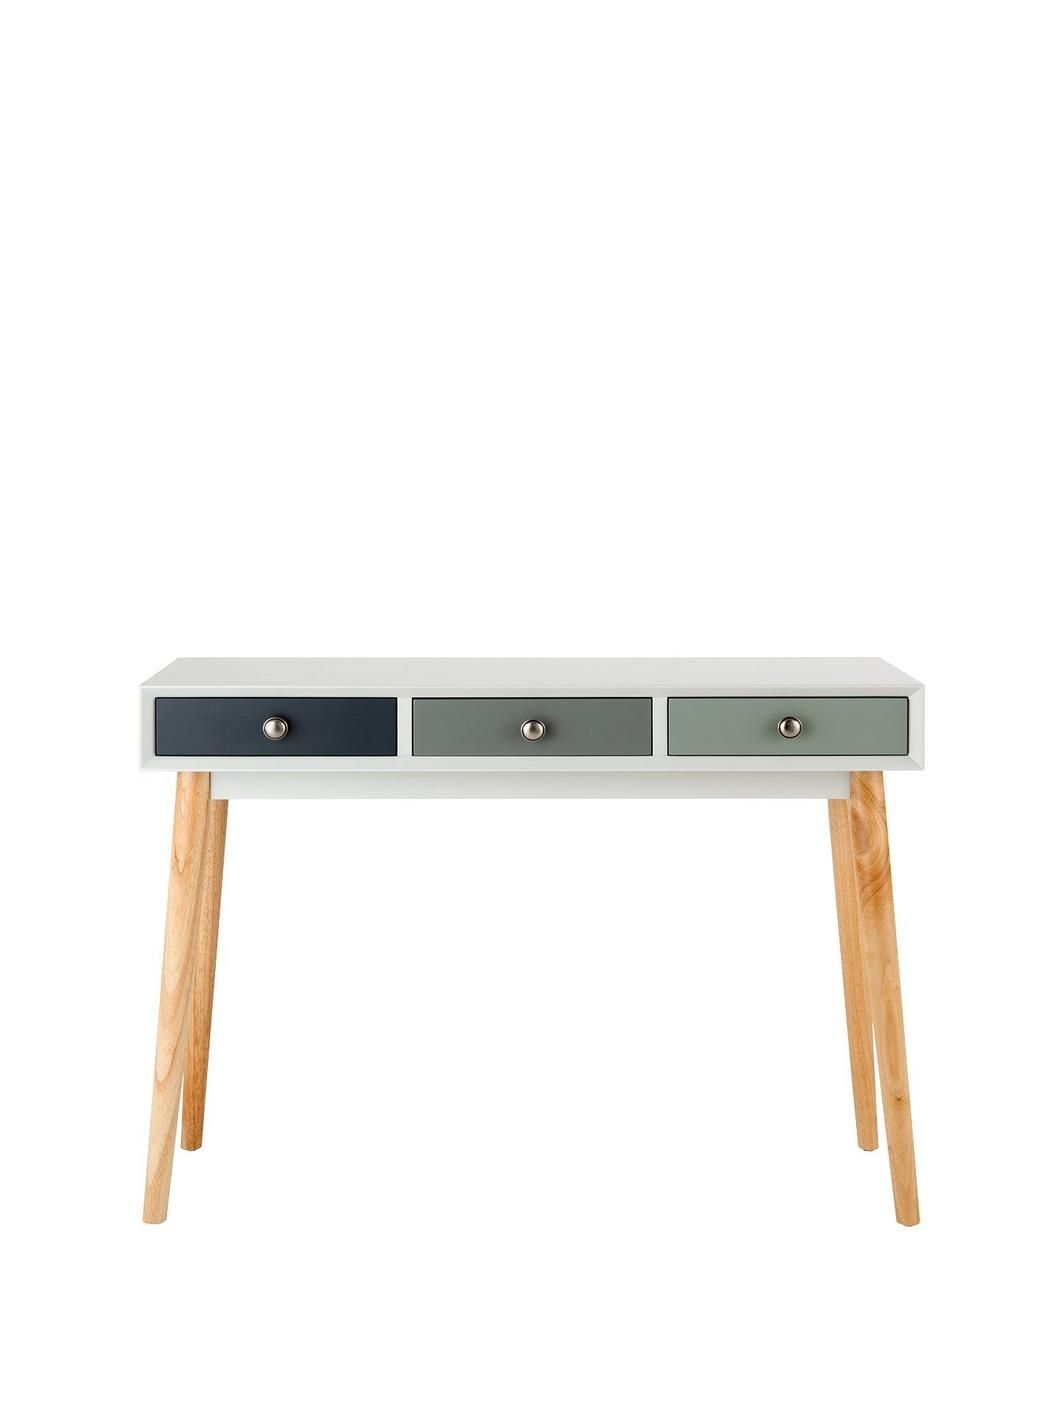 Orla Retro Console Table, Http://www.littlewoodsireland.ie/orla